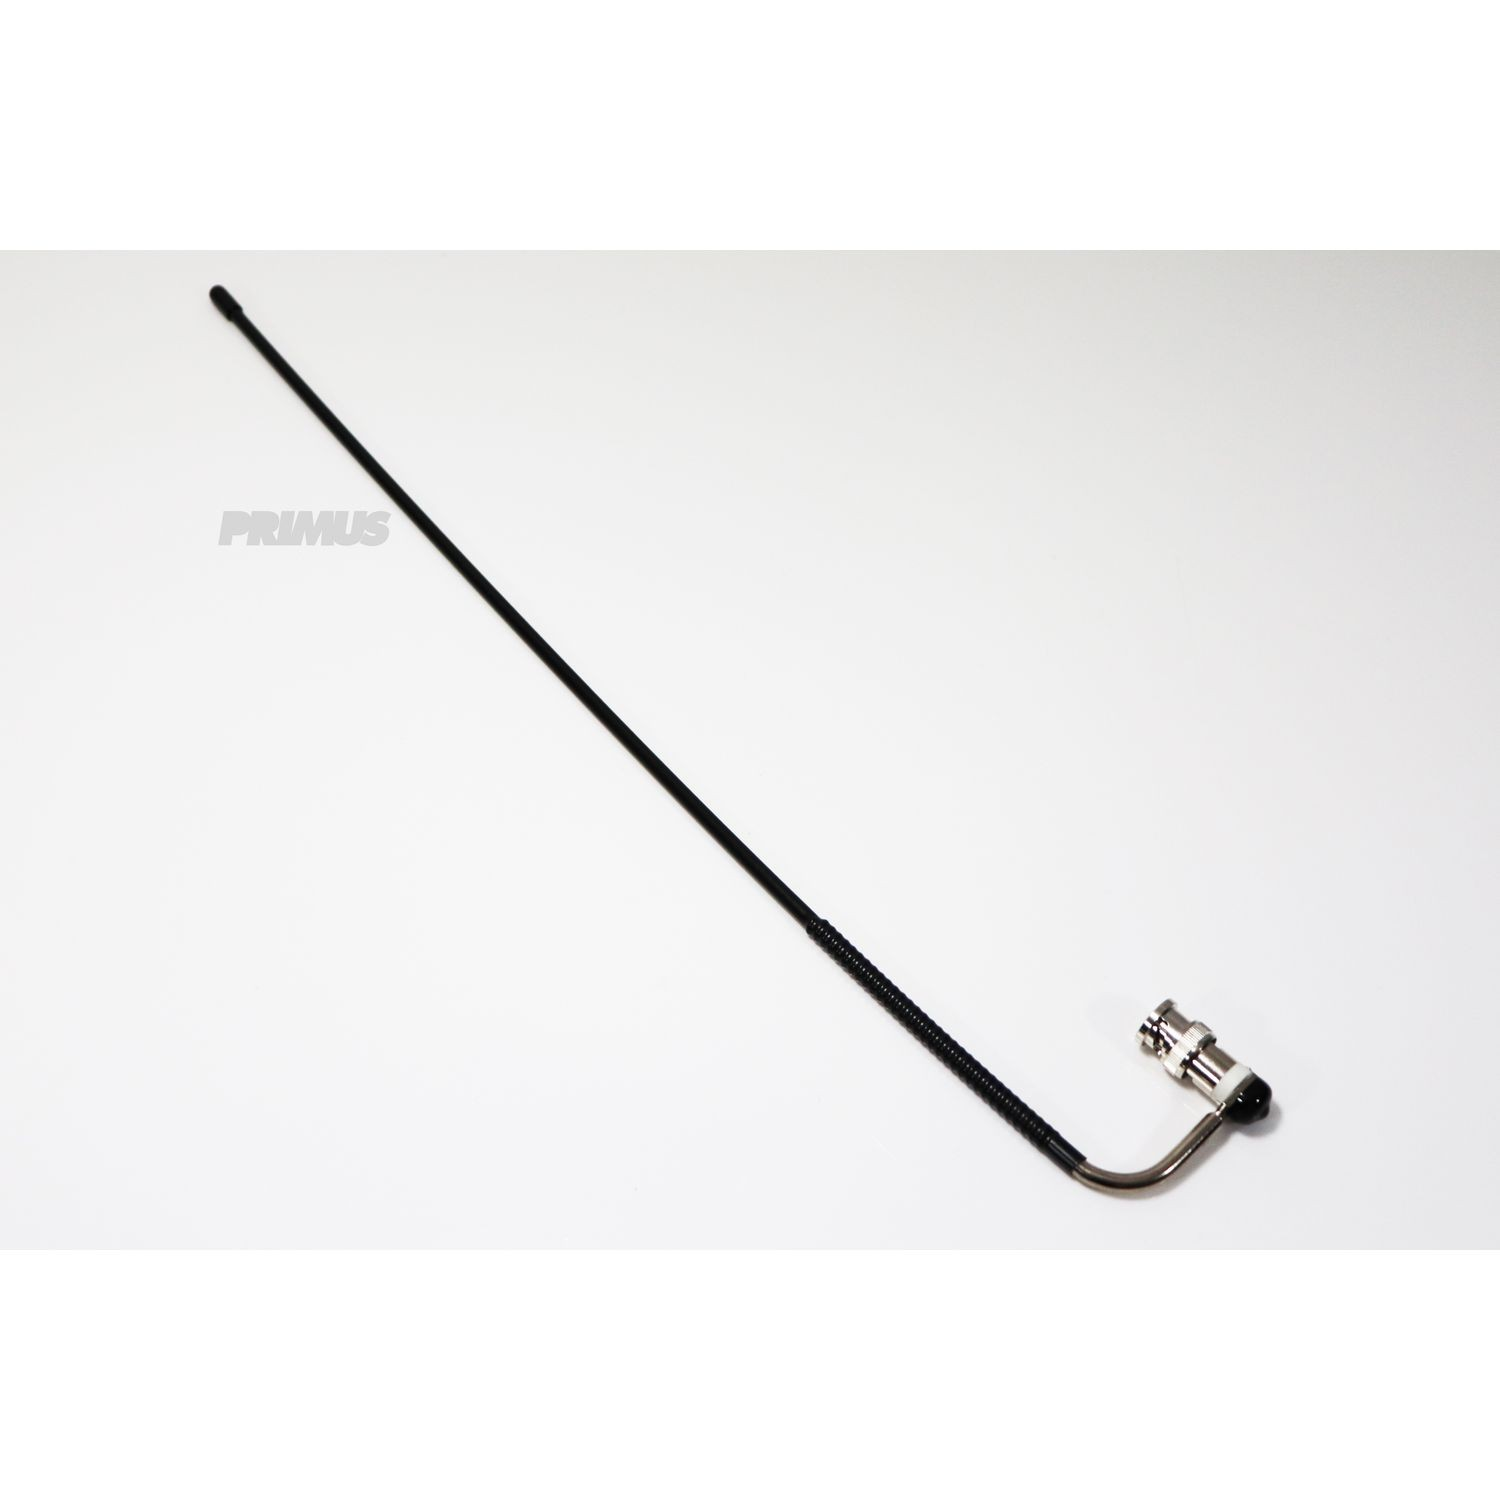 161 MHZ 1/4 WAVE DRIBBLE ANTENNA, 19 IN.